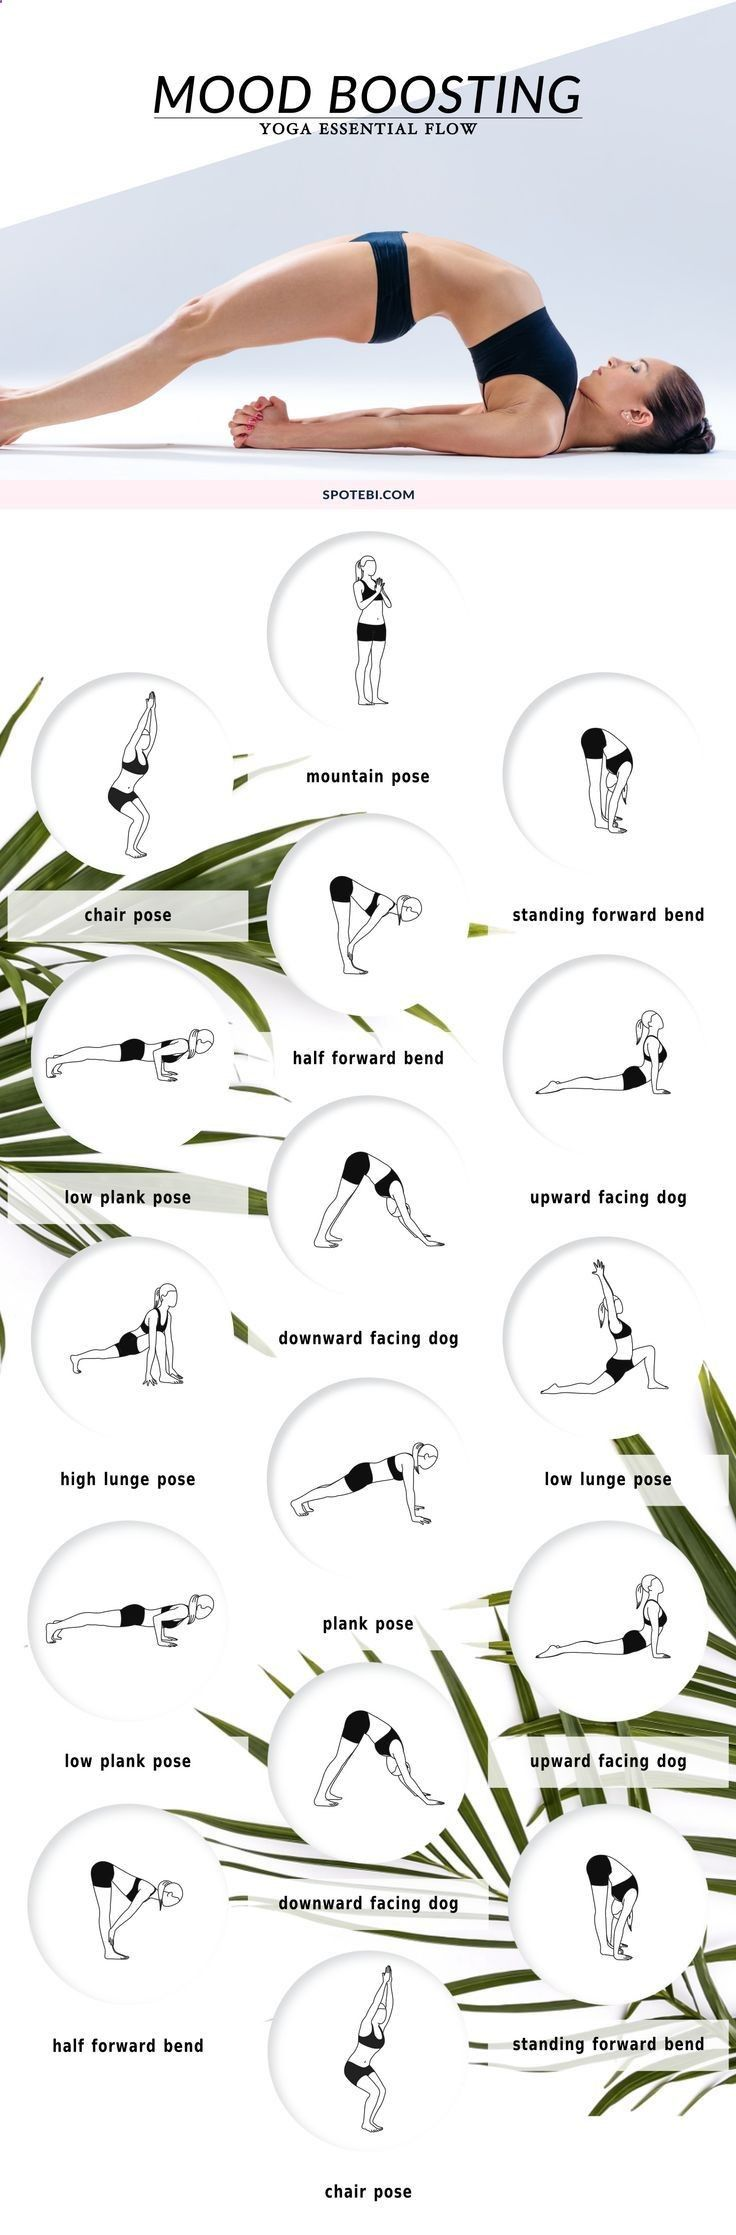 Beat stress and get happy with these mood-boosting yoga poses. A 16 minute essential flow to help you shake off any anxiety or frustration, and create a more stable sense of calm.